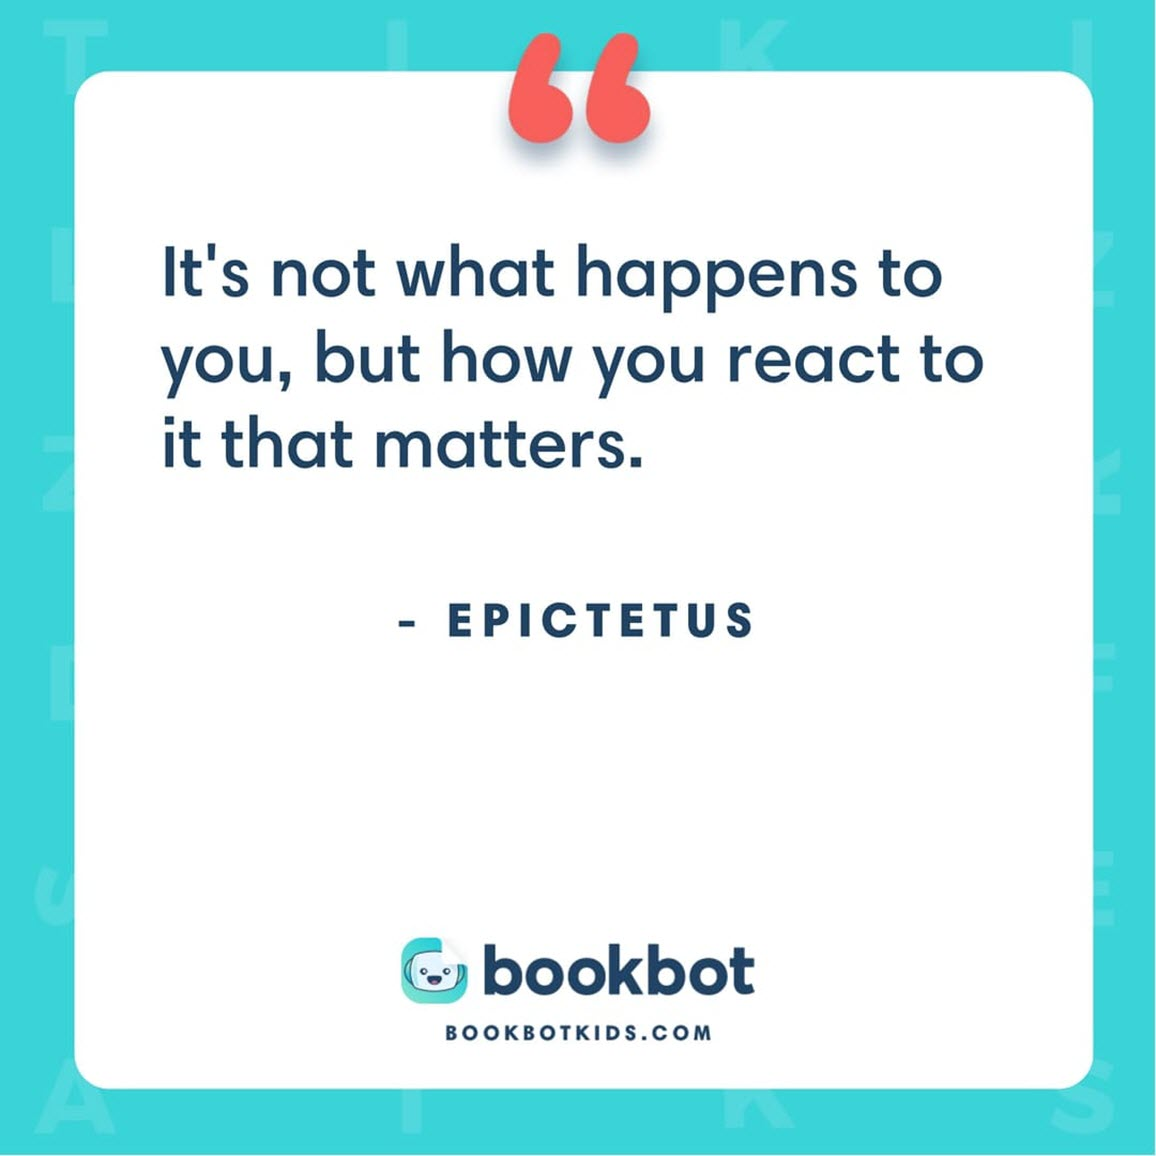 It's not what happens to you, but how you react to it that matters. – Epictetus